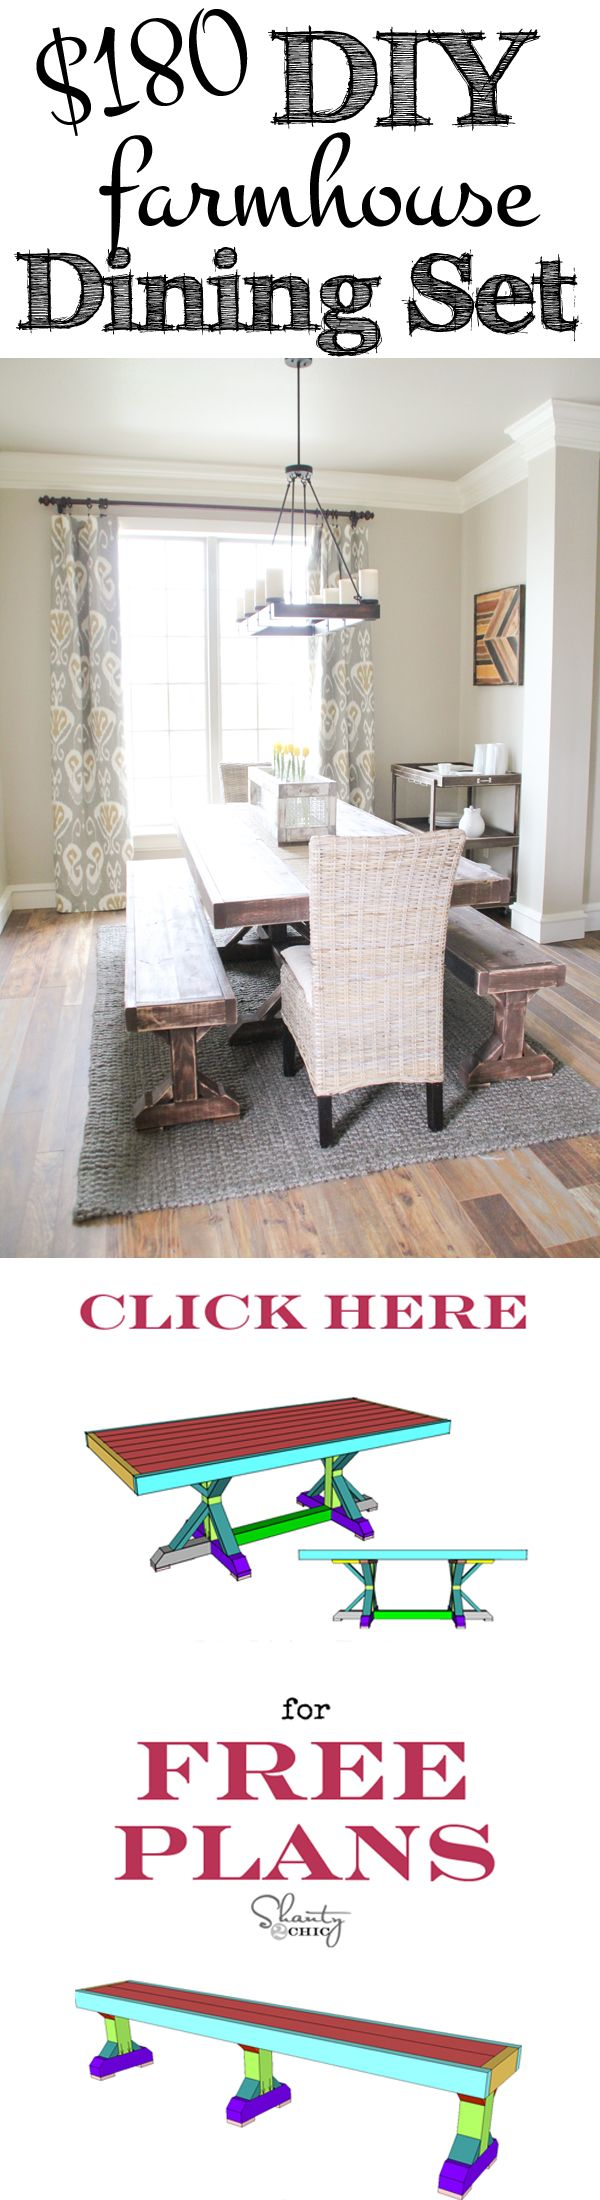 Build this Restoration Hardware inspired dining set for only $180 with FREE Plans from www.shanty-2-chic.com